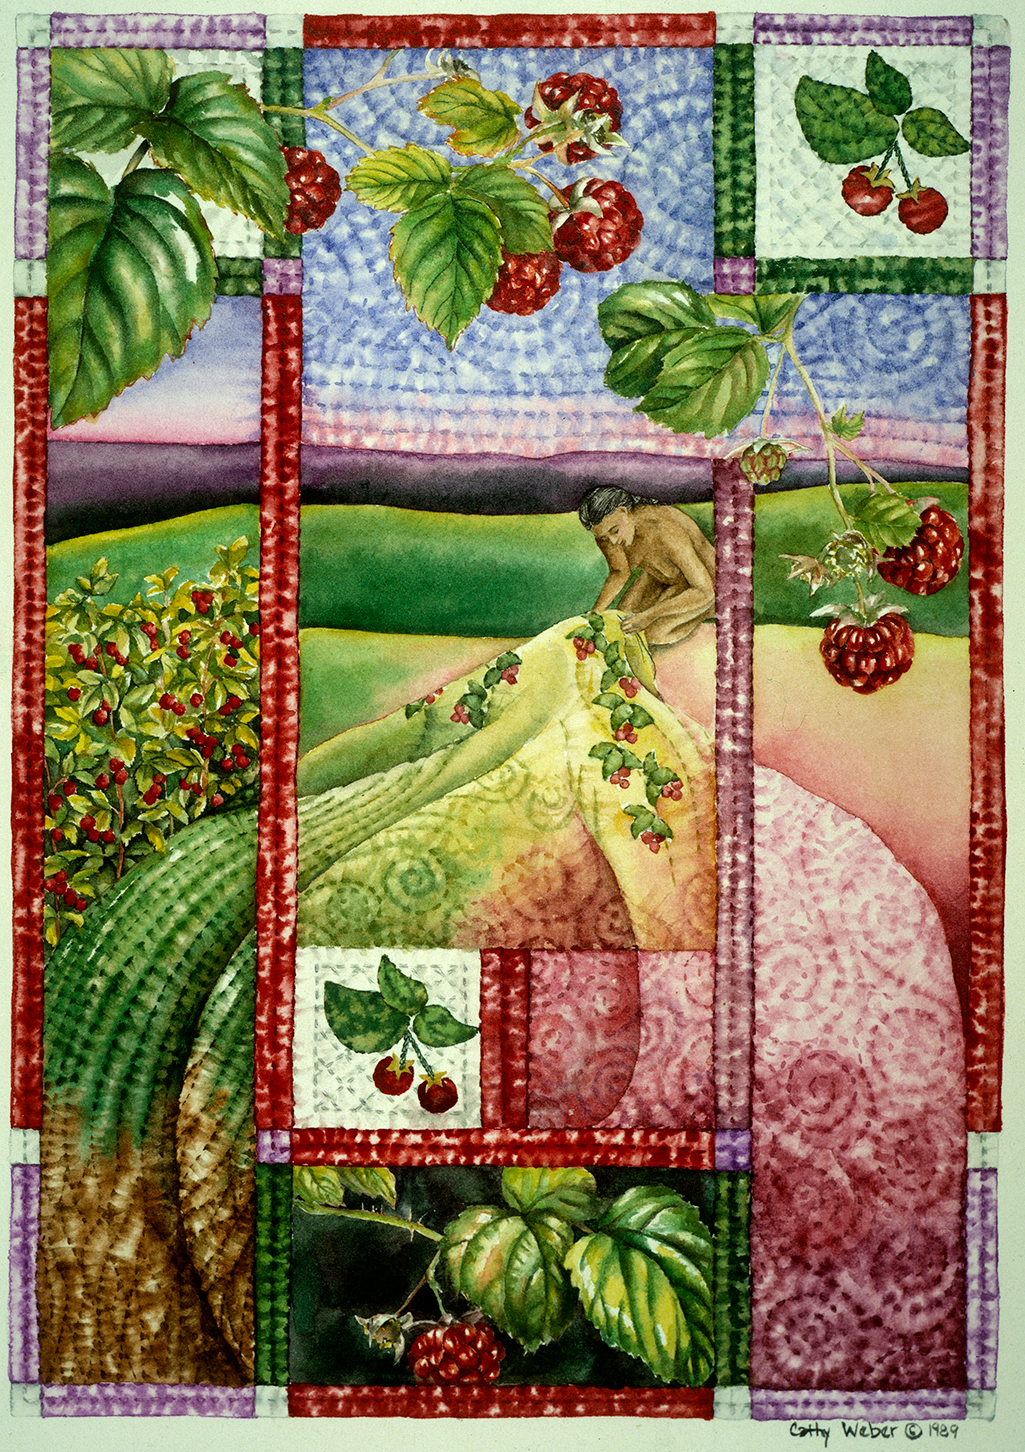 cathy weber - art - holy card - holycard - quilt - watercolor - creation - stitcher - stitch - montana- raspberry - quilter